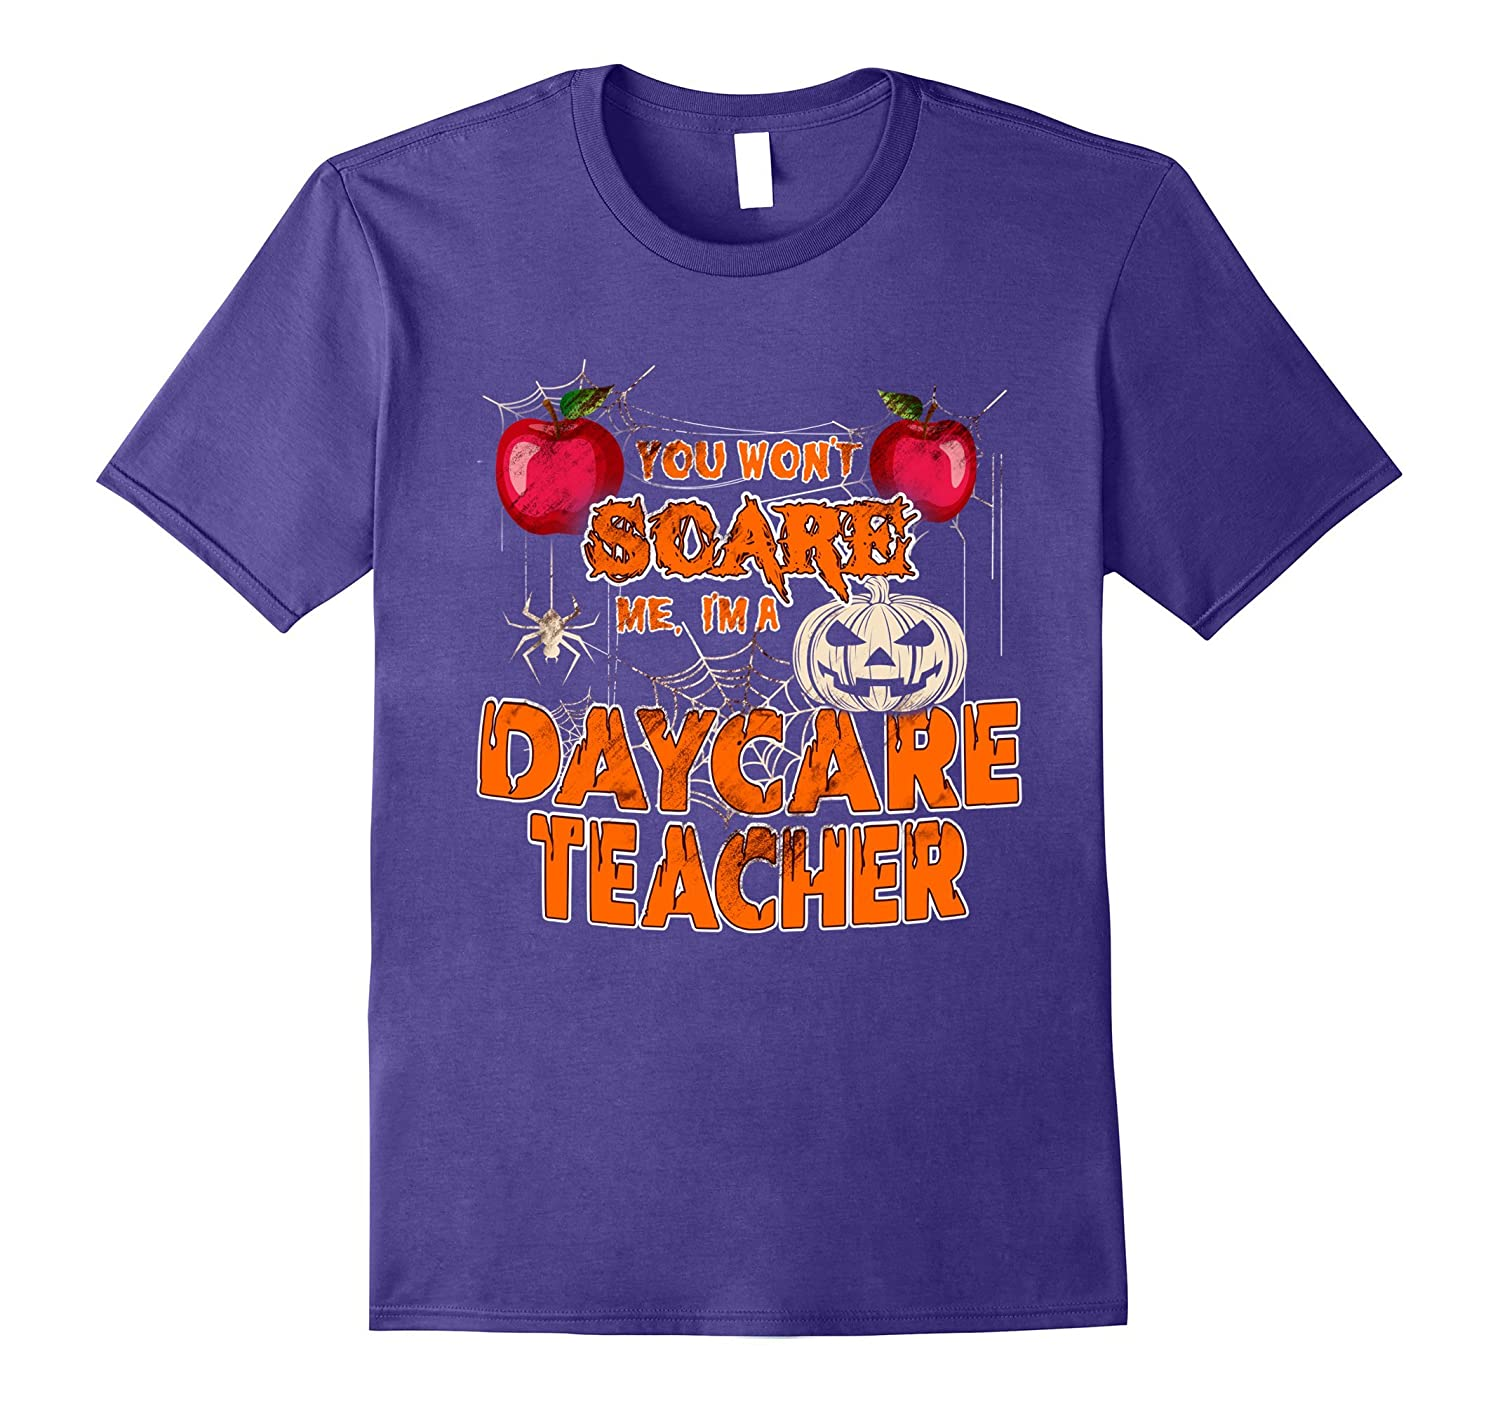 You Won't Scare me I'm a daycare Teacher shirt-Rose